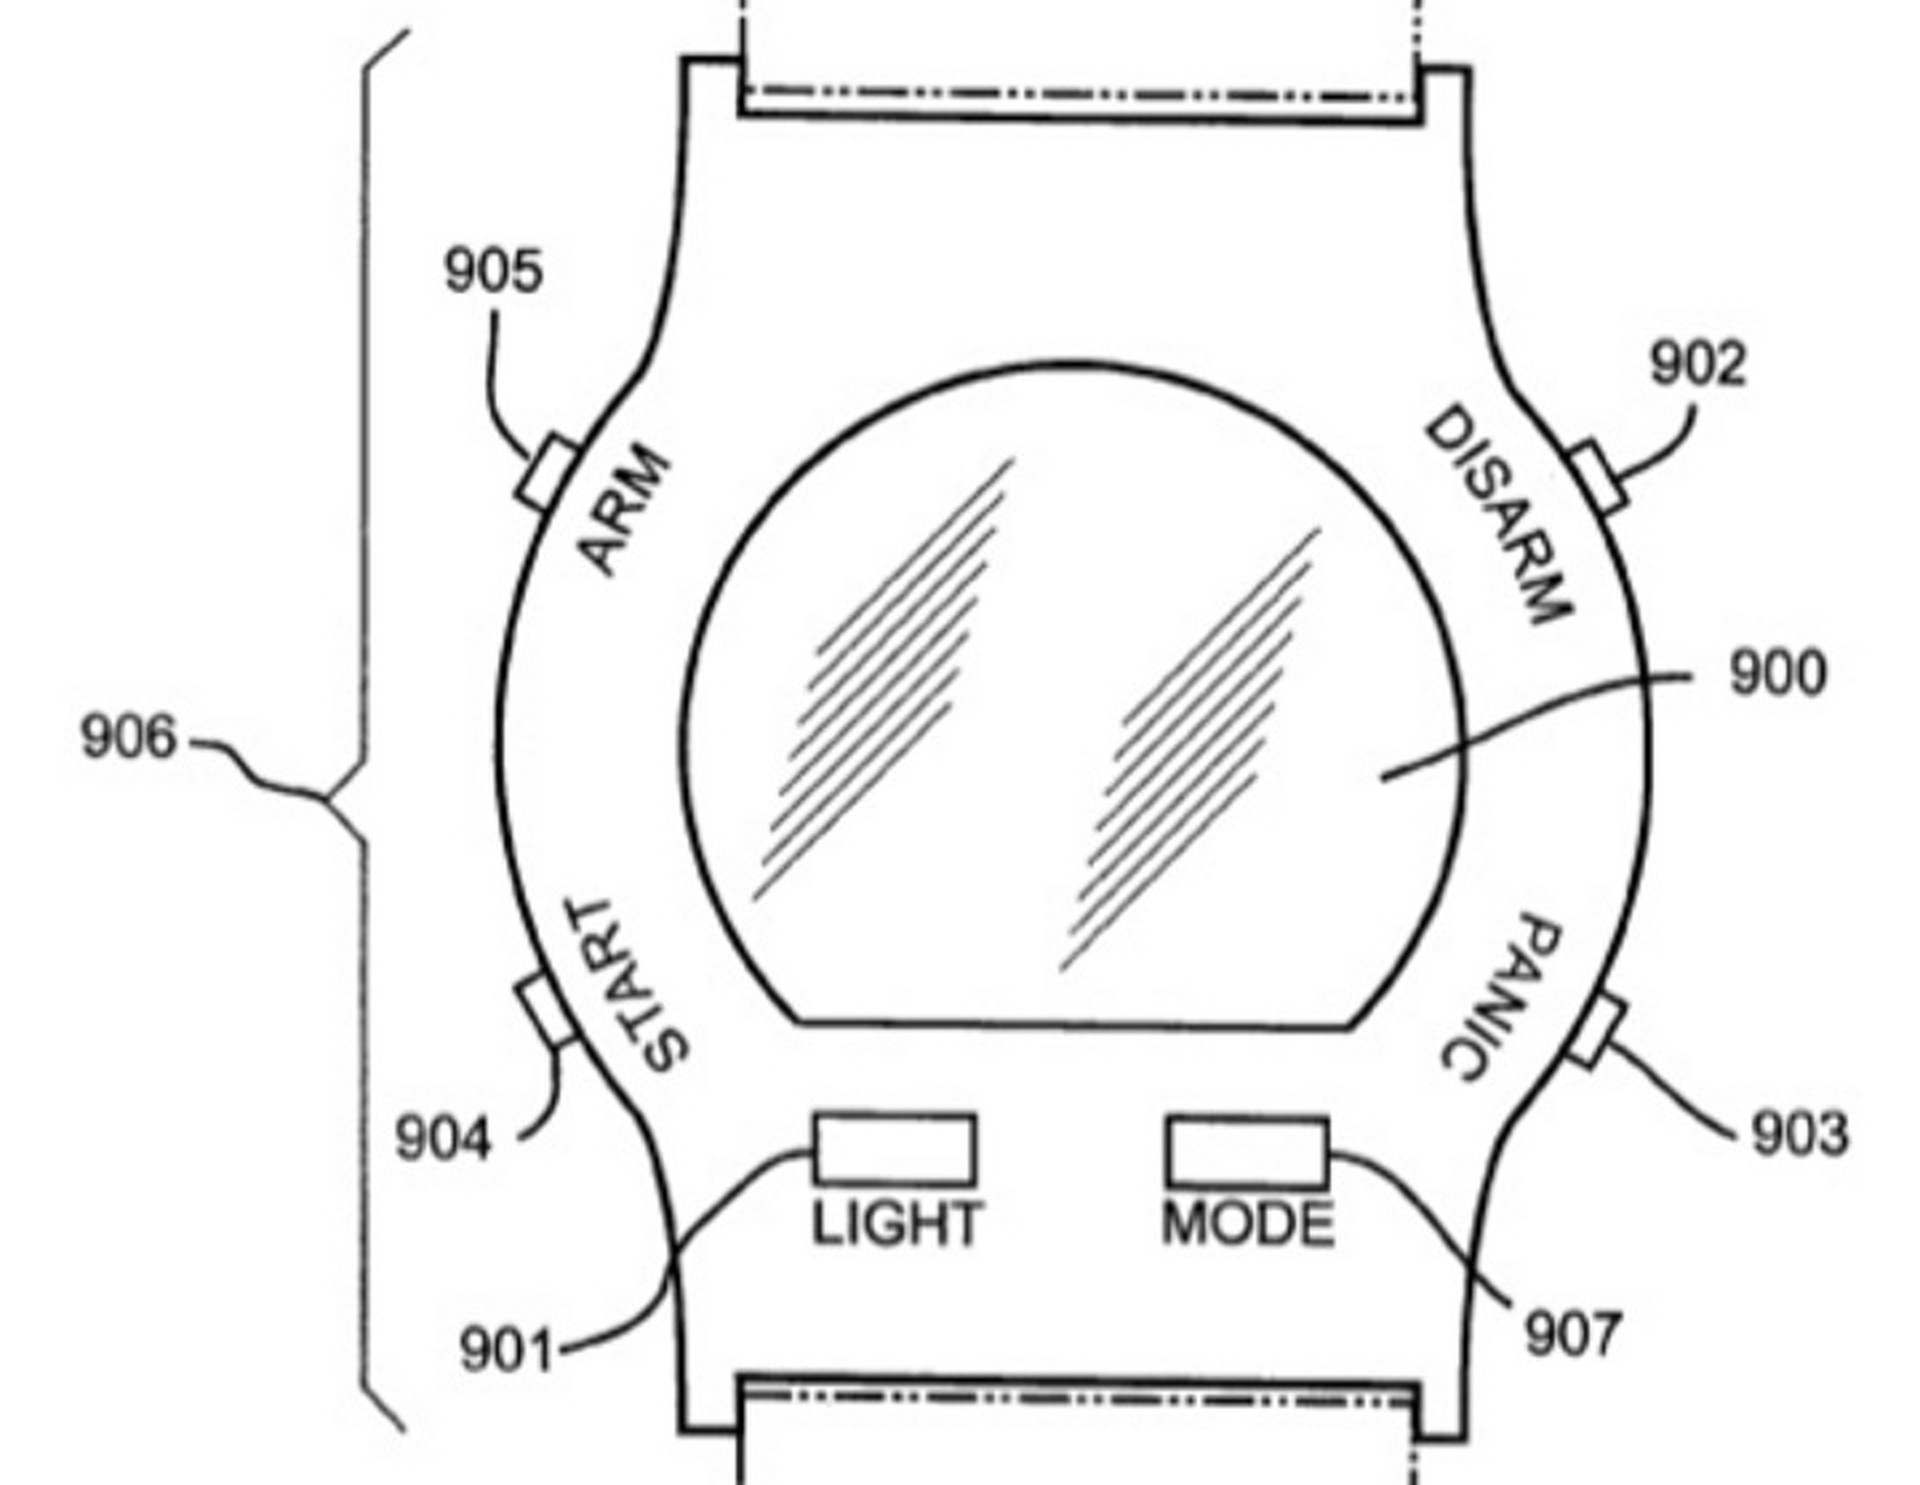 Patent Troll Suing Apple Car Industry Over Smartwatch Filing